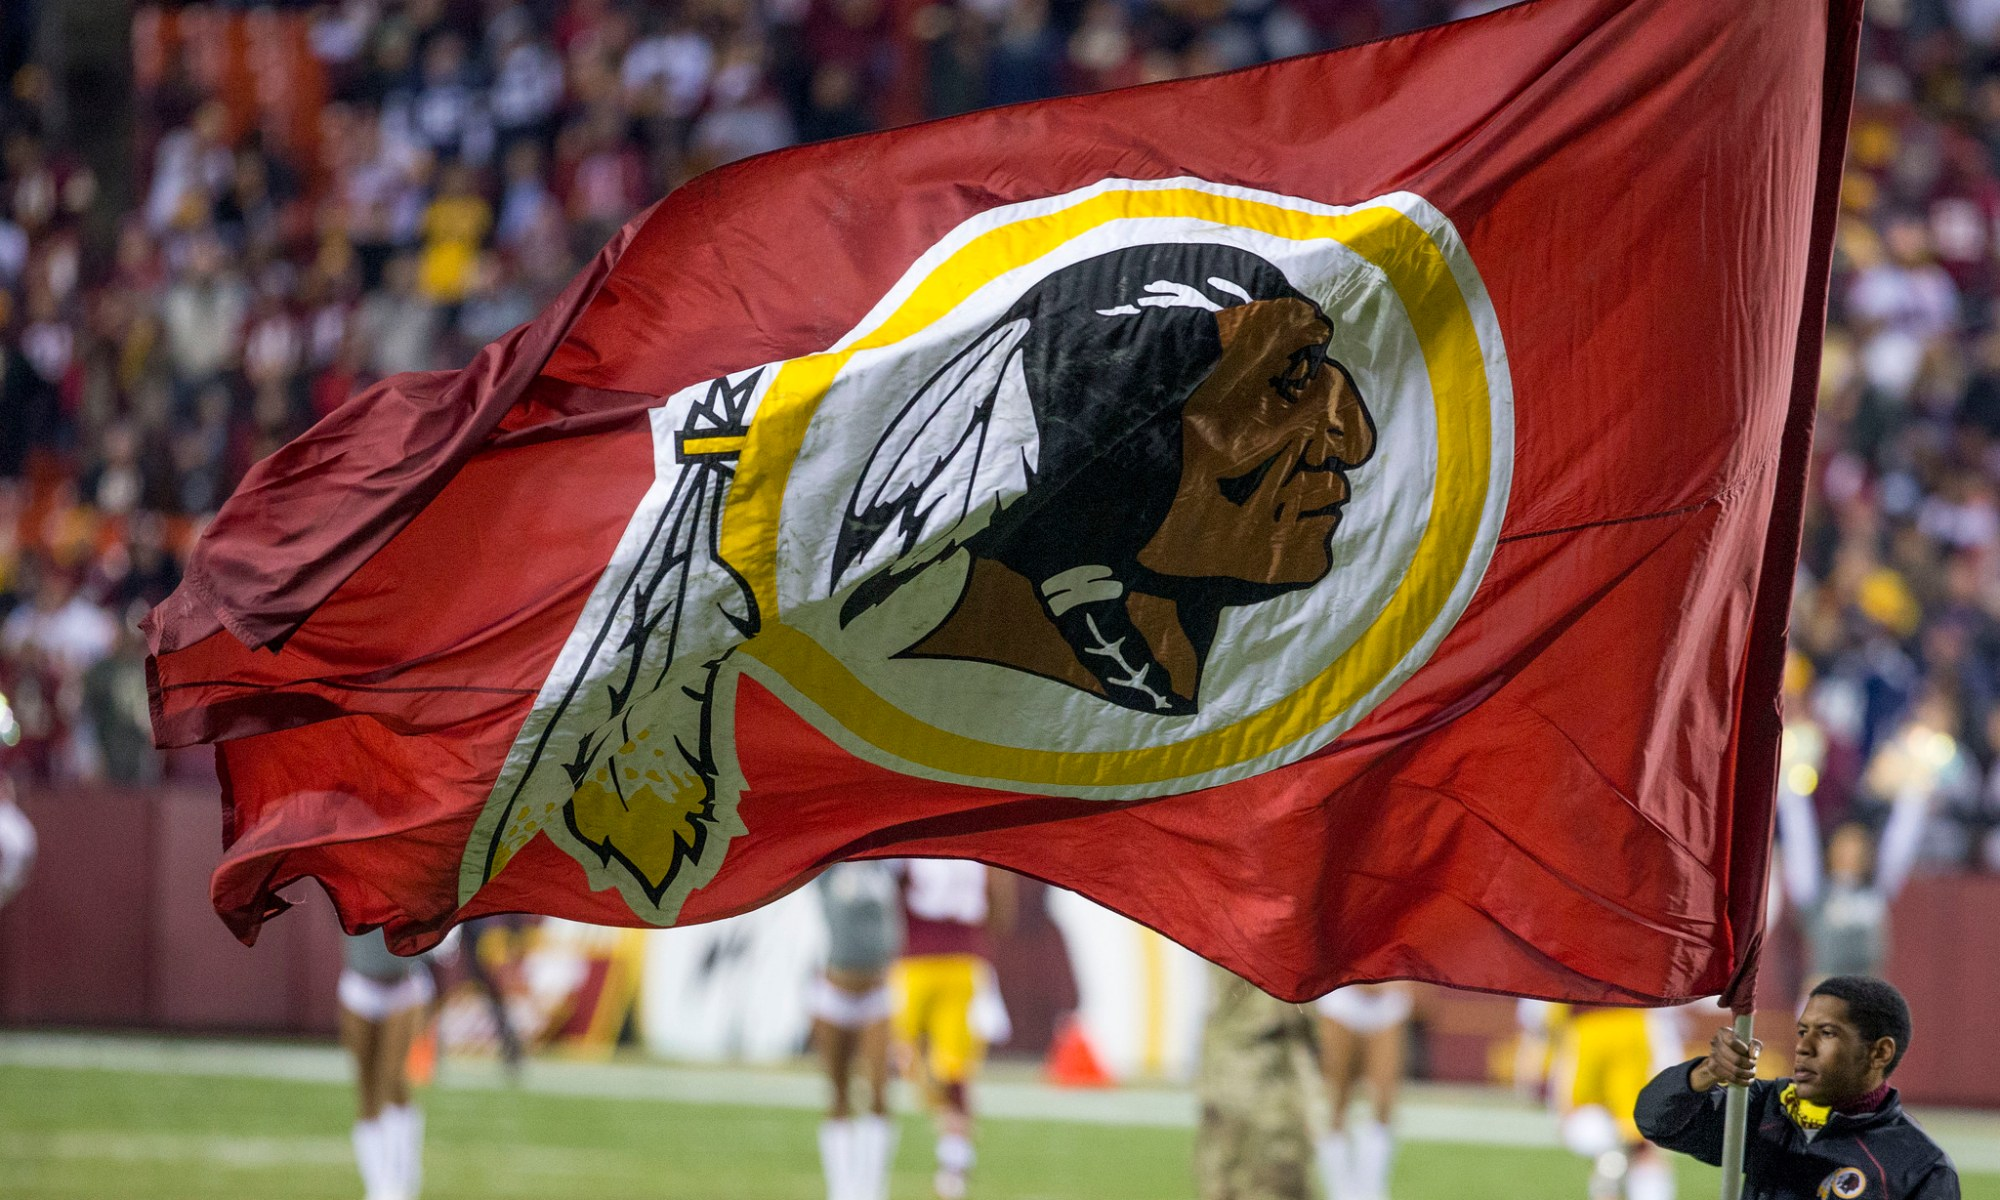 Washington Redskins flag